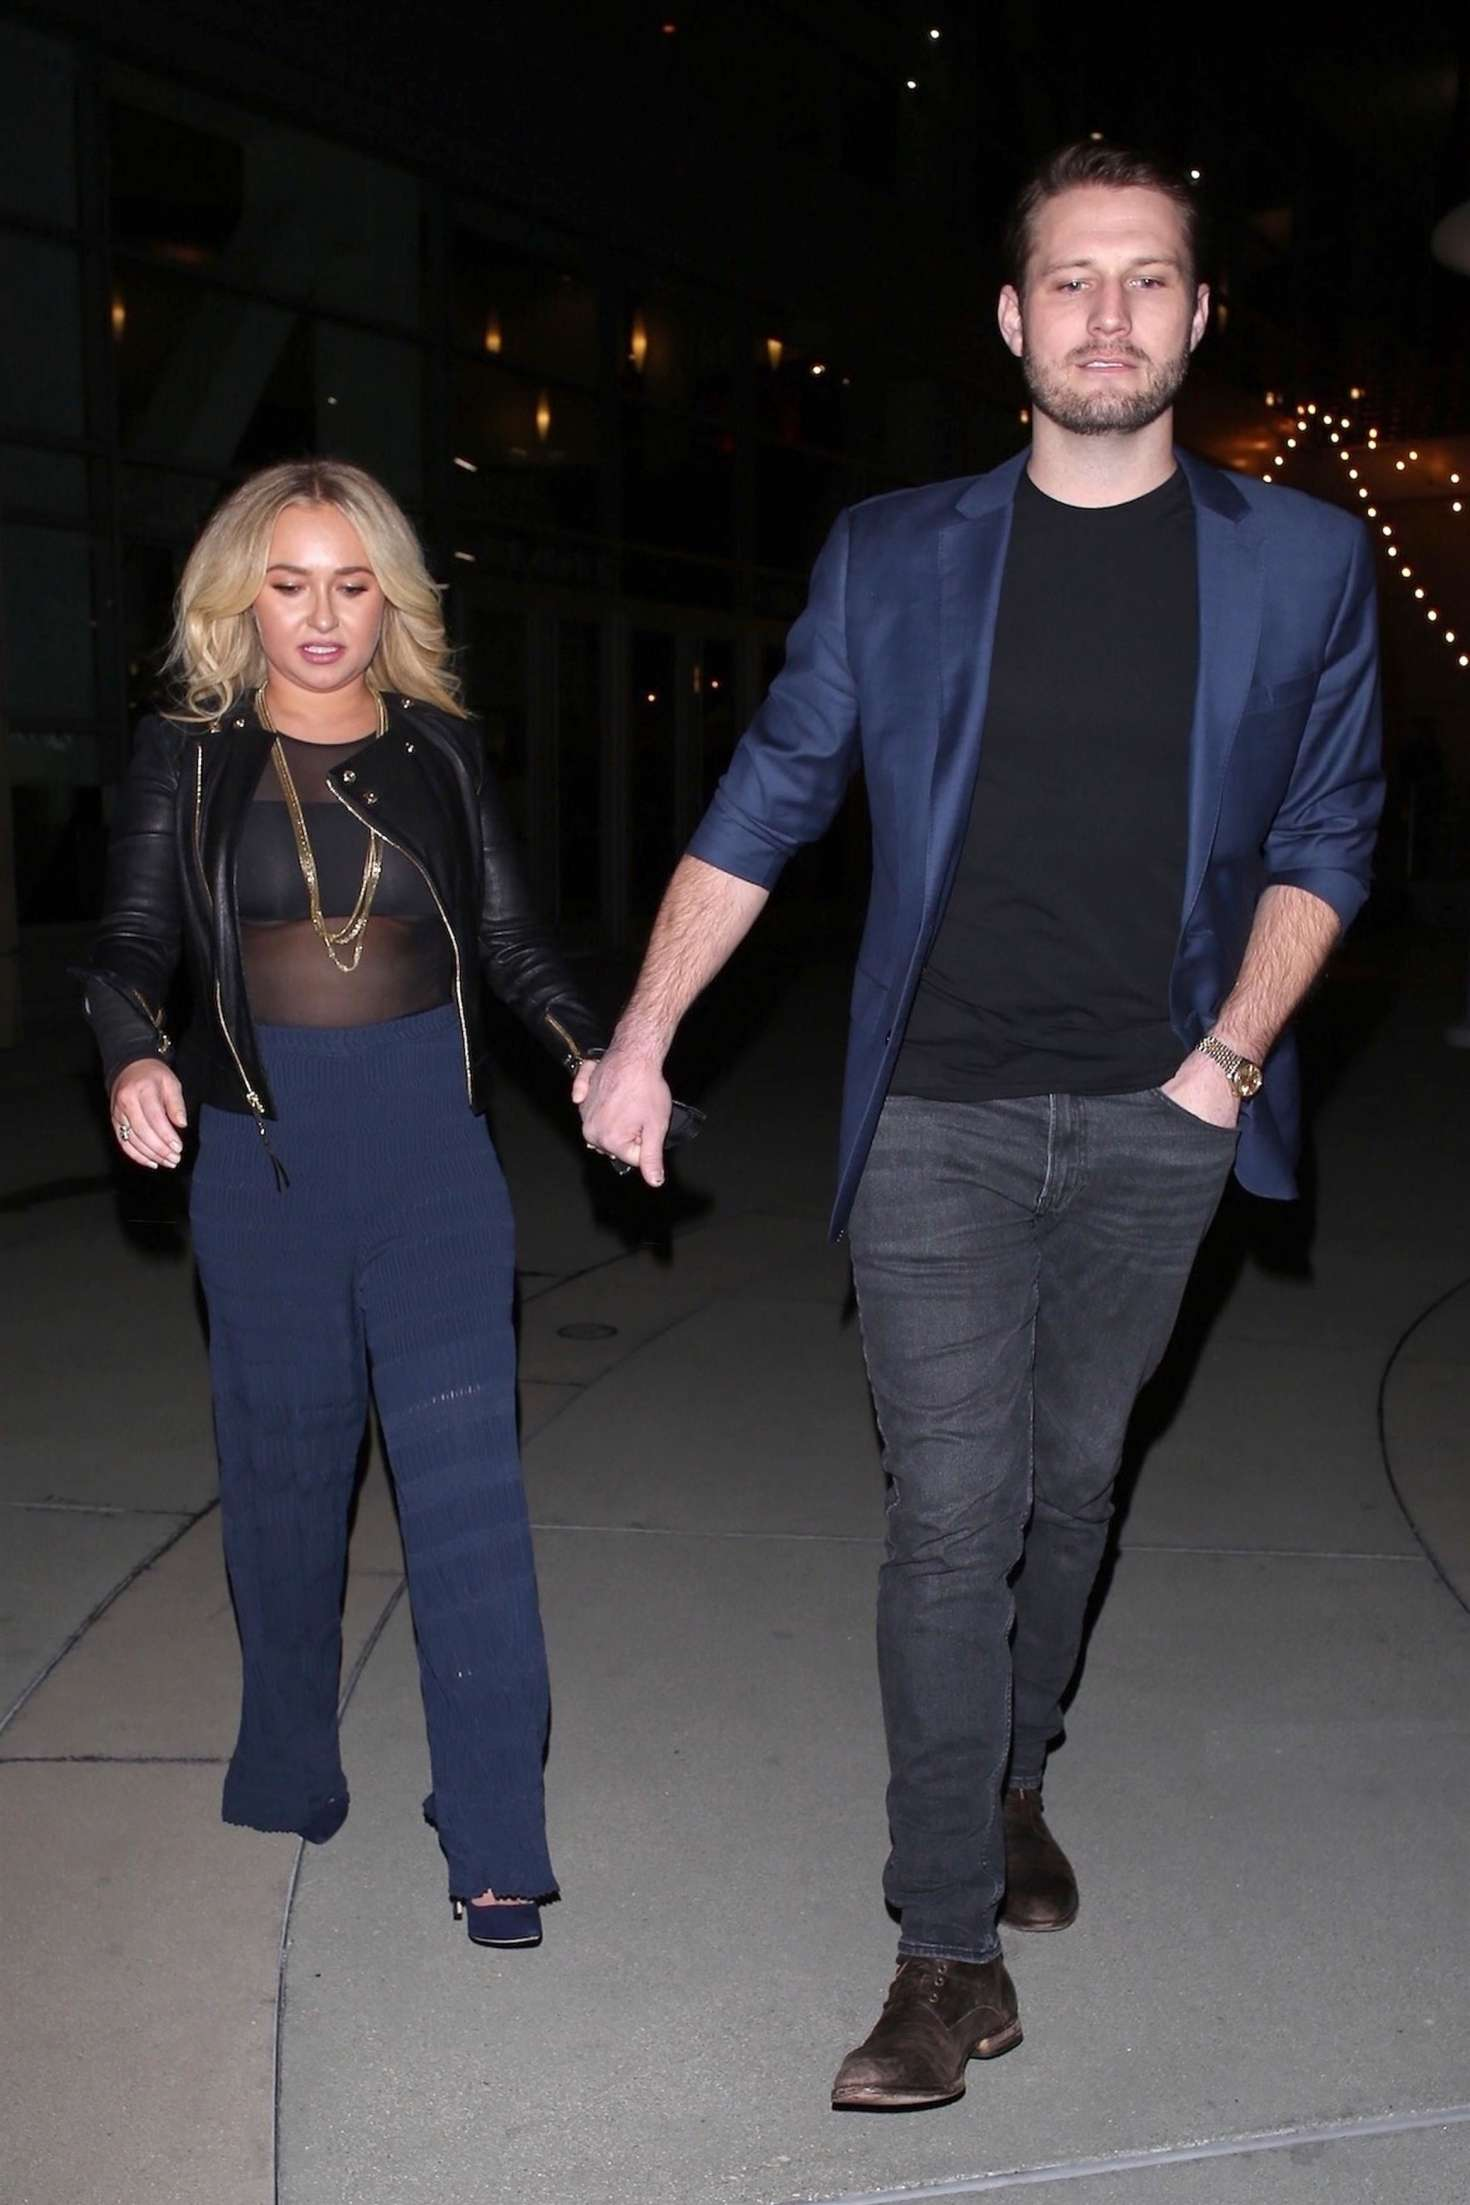 Hayden Panettiere and Brian Hickerson - Night out in Hollywood